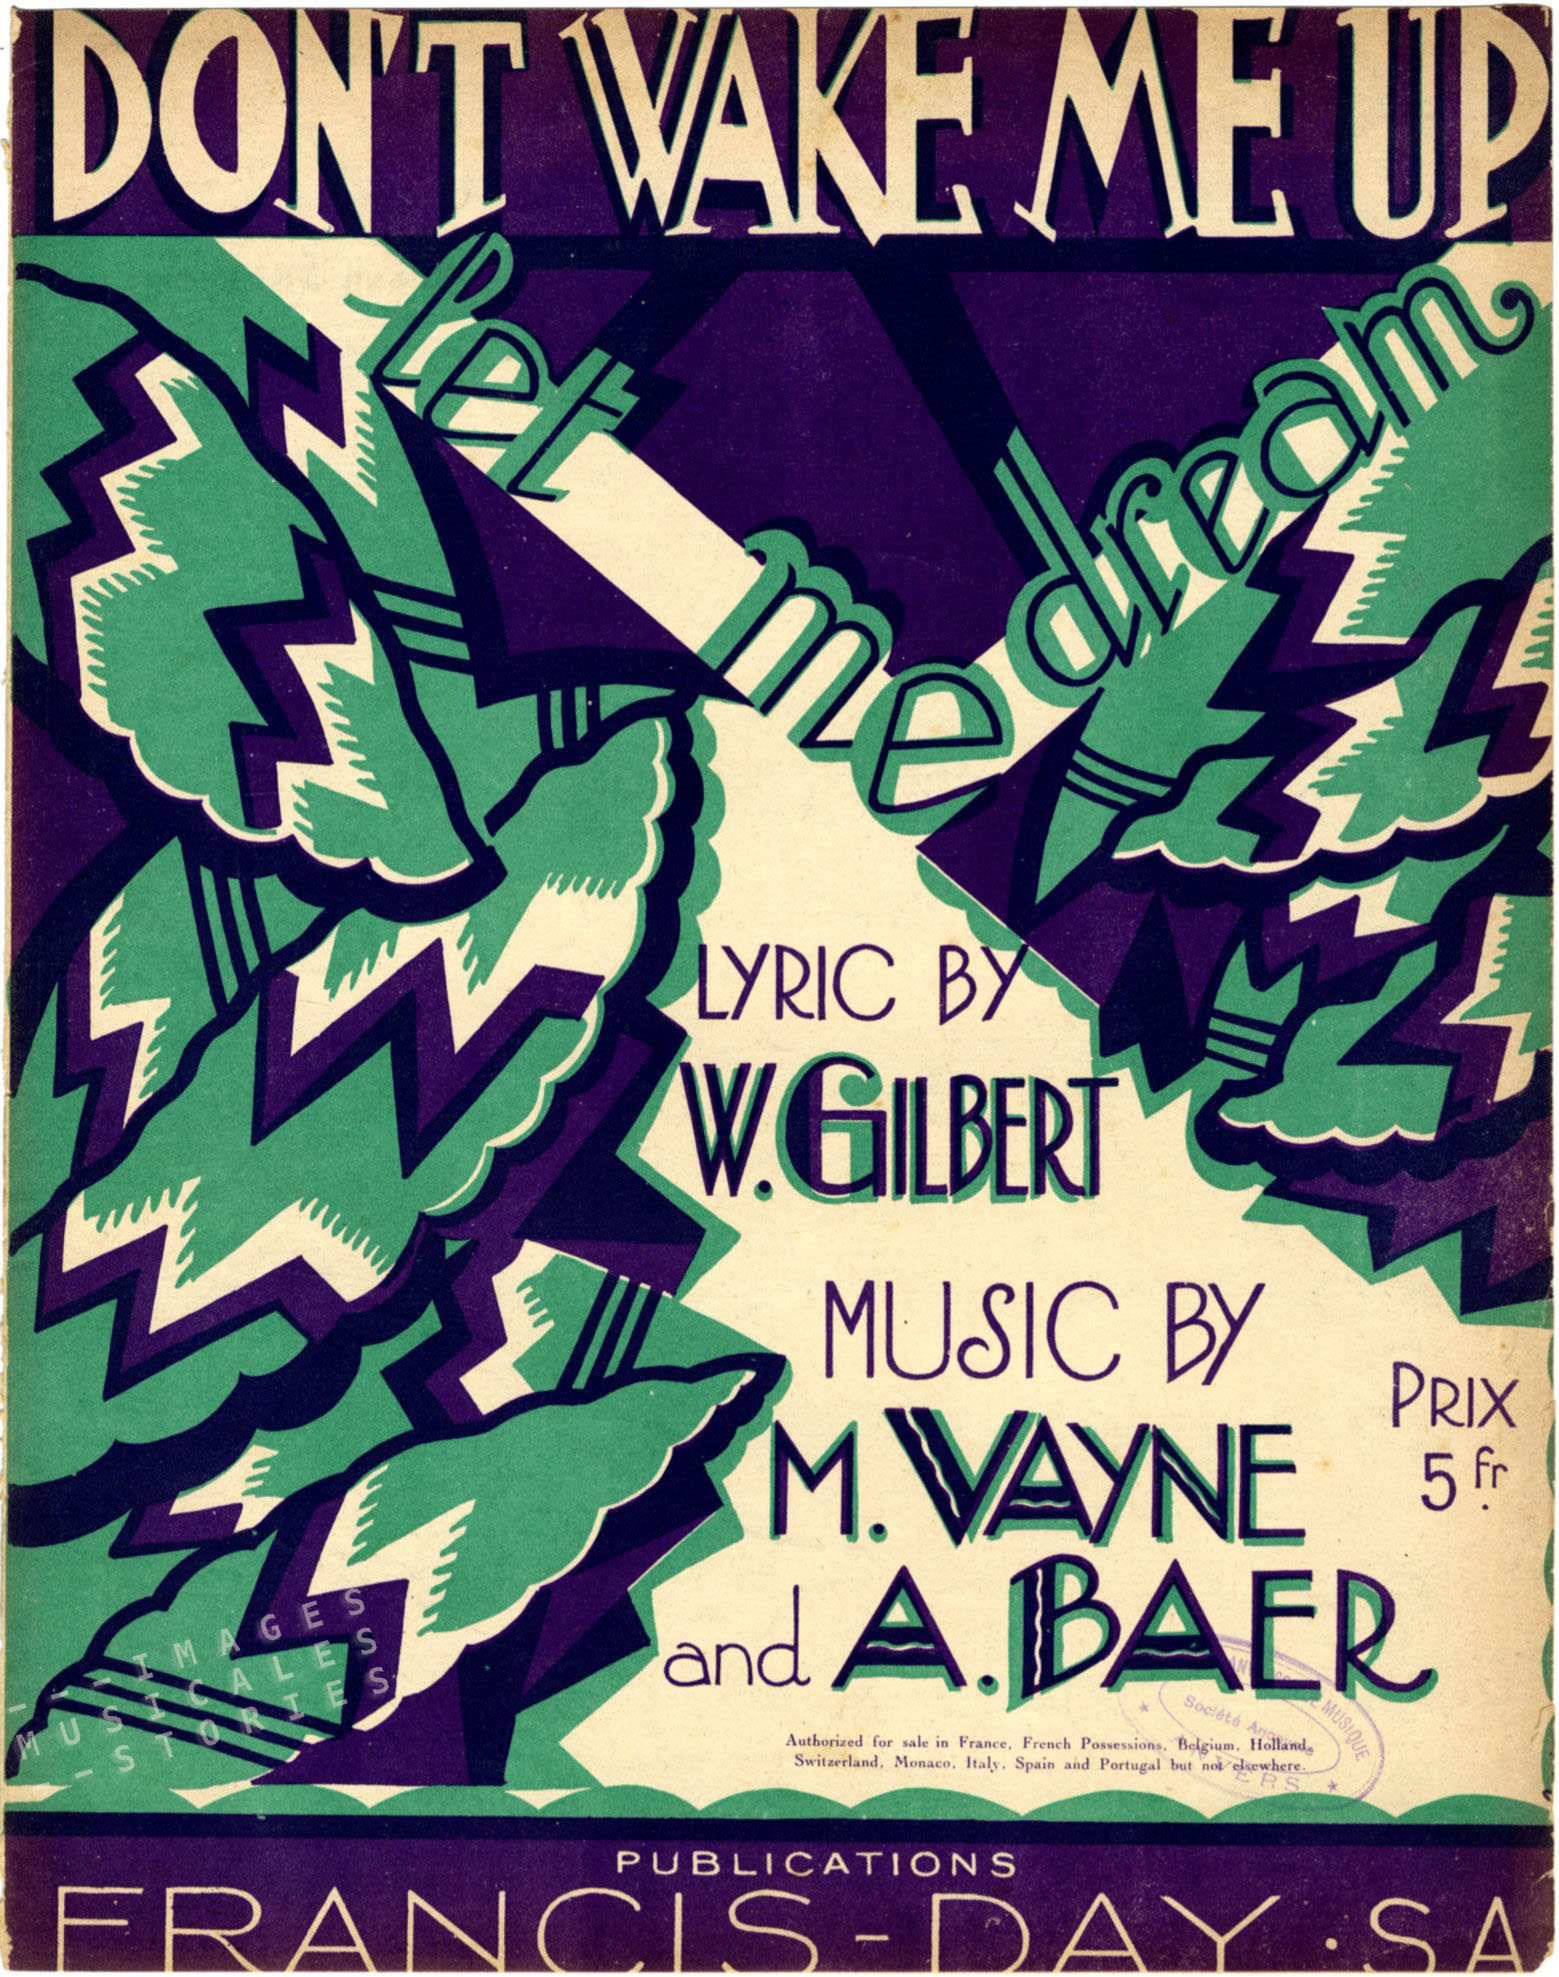 'Don't Wake Me Up', sheet music illustrated by Fabien Loris